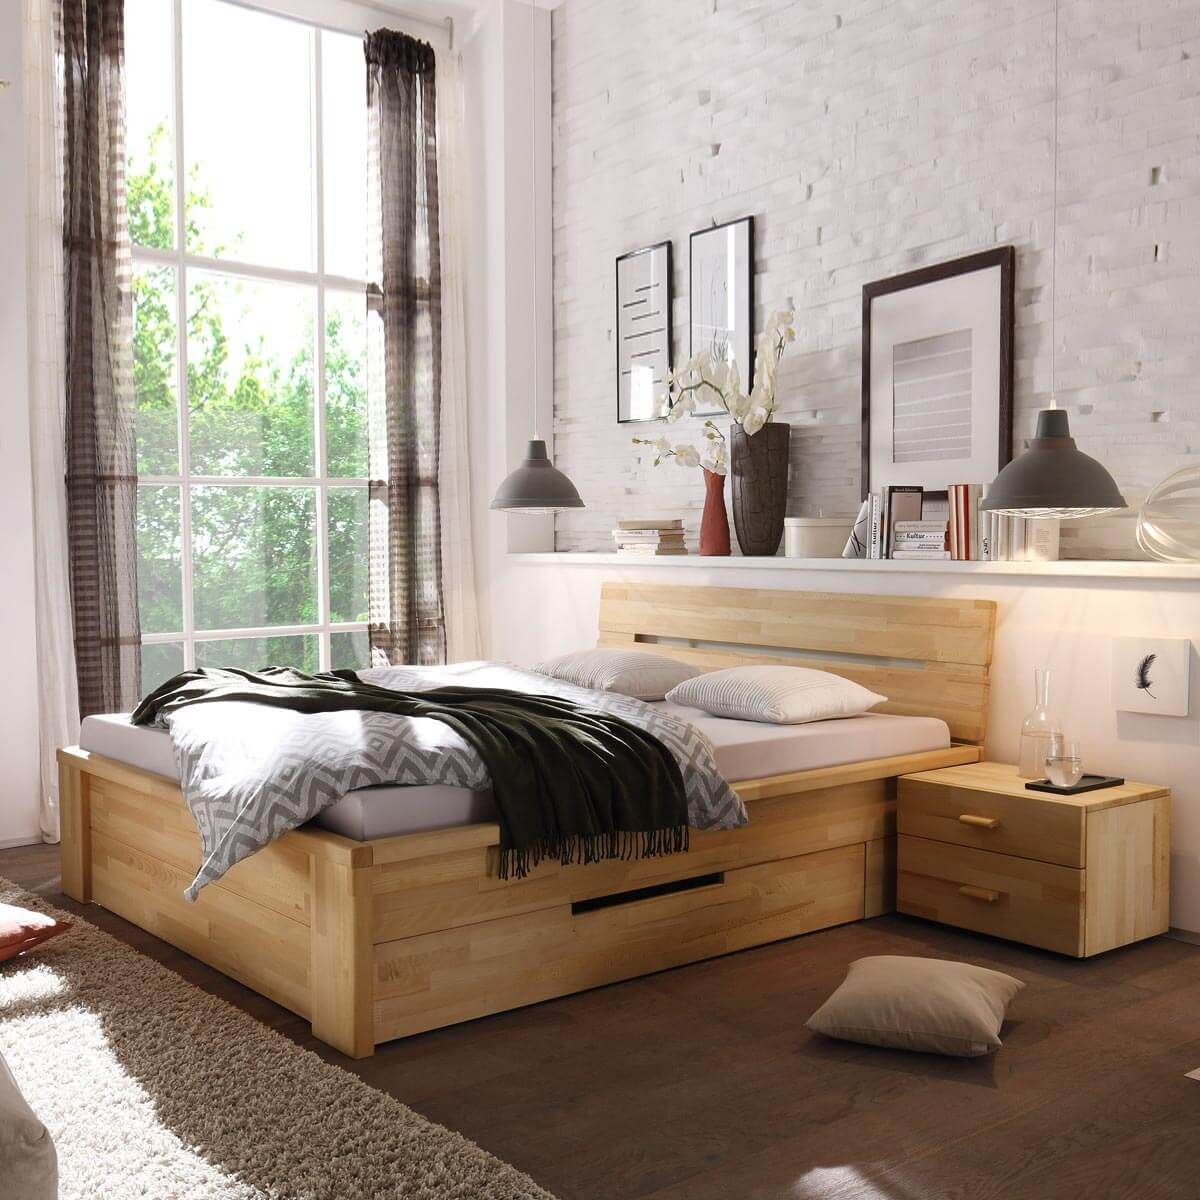 bett roros 160x200 mit schubladen in kernbuche massiv ge lt m bel schlafzimmer pinterest. Black Bedroom Furniture Sets. Home Design Ideas